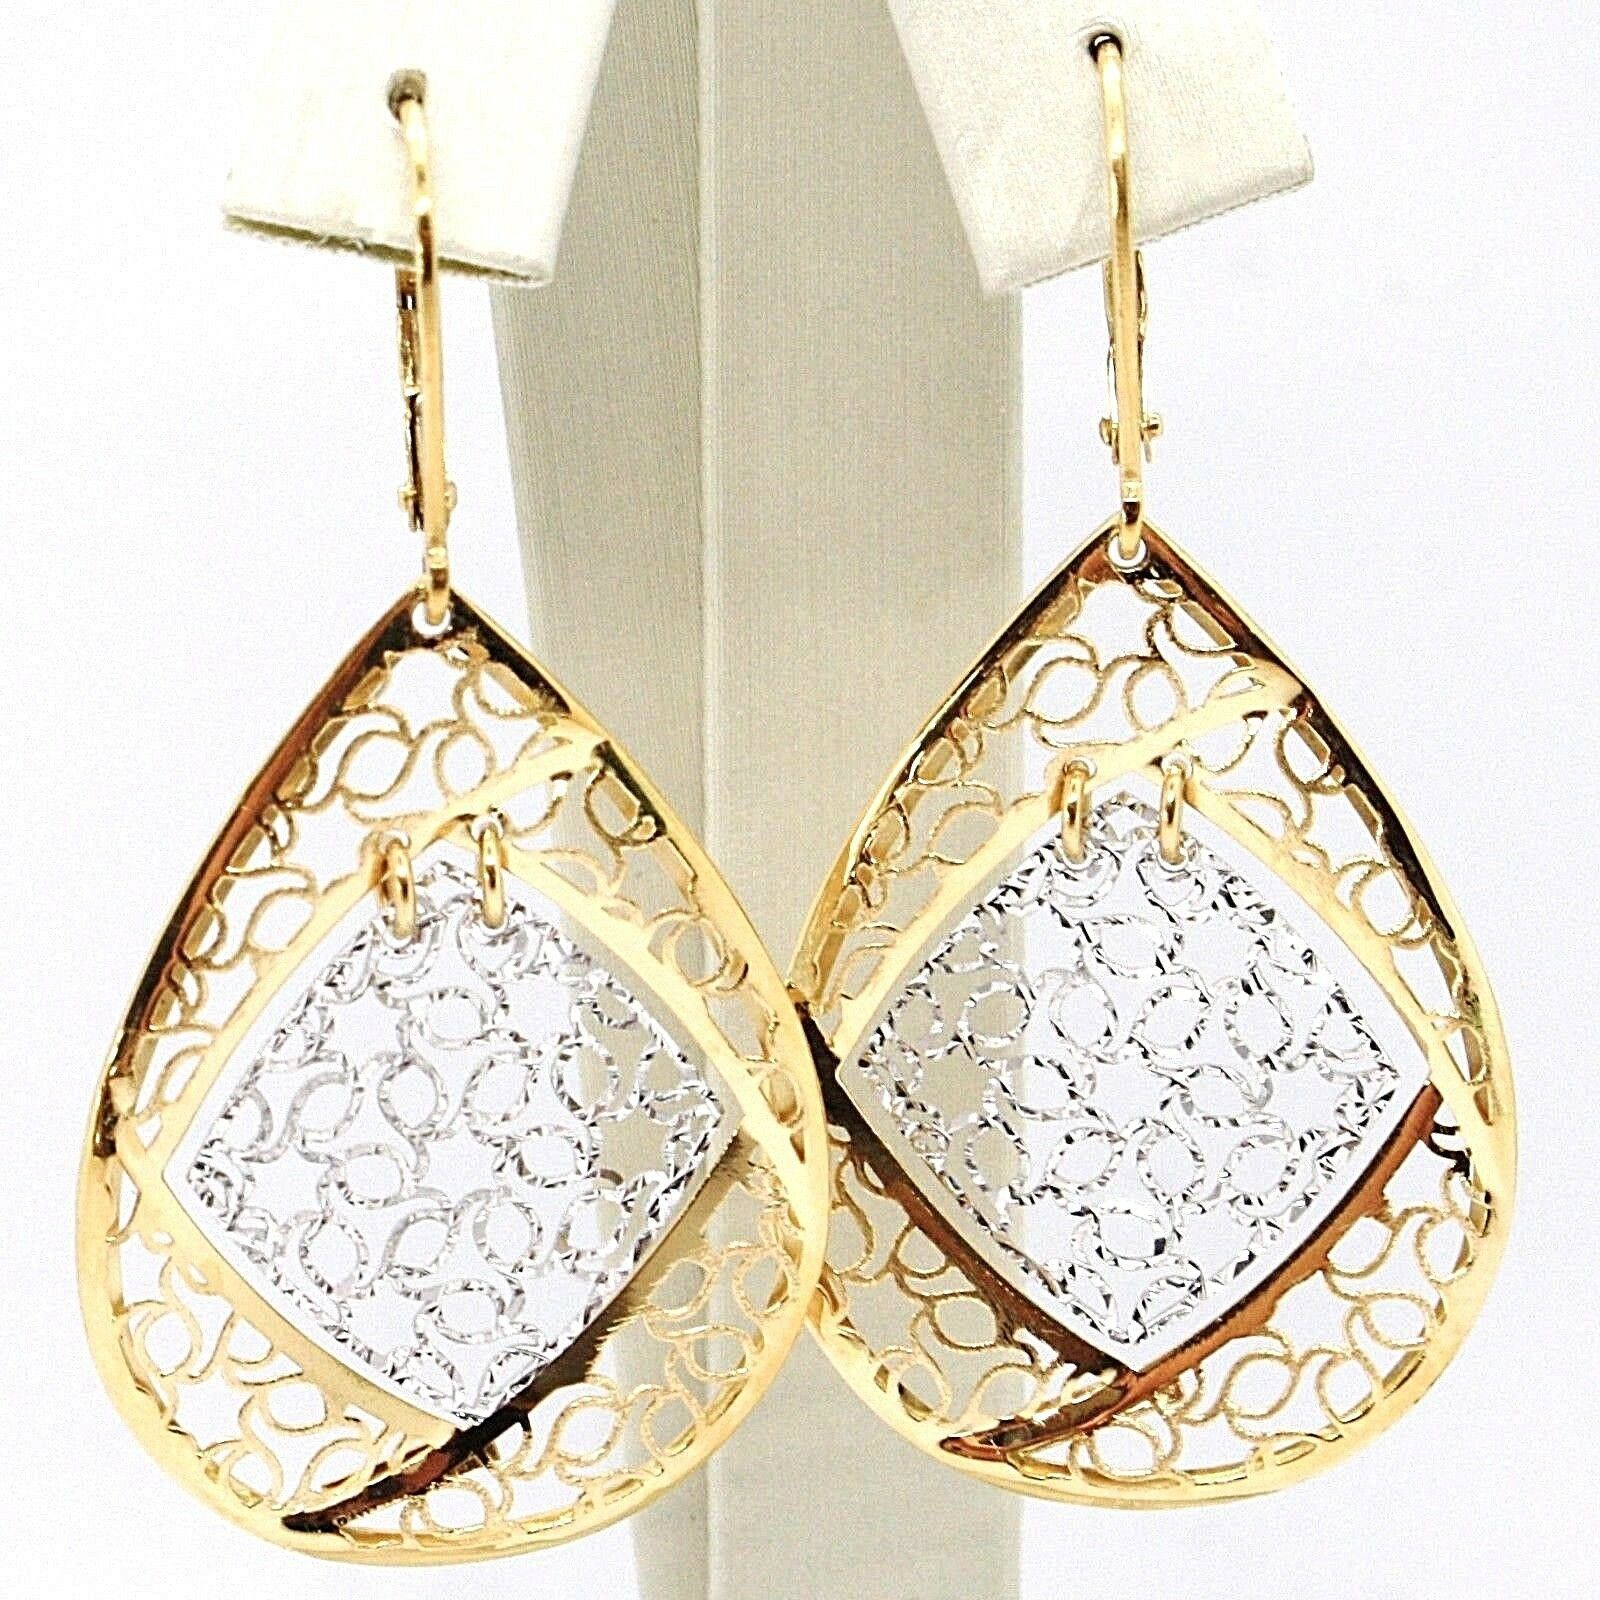 18K YELLOW WHITE GOLD PENDANT EARRINGS, BIG FINELY WORKED DROPS, MADE IN ITALY